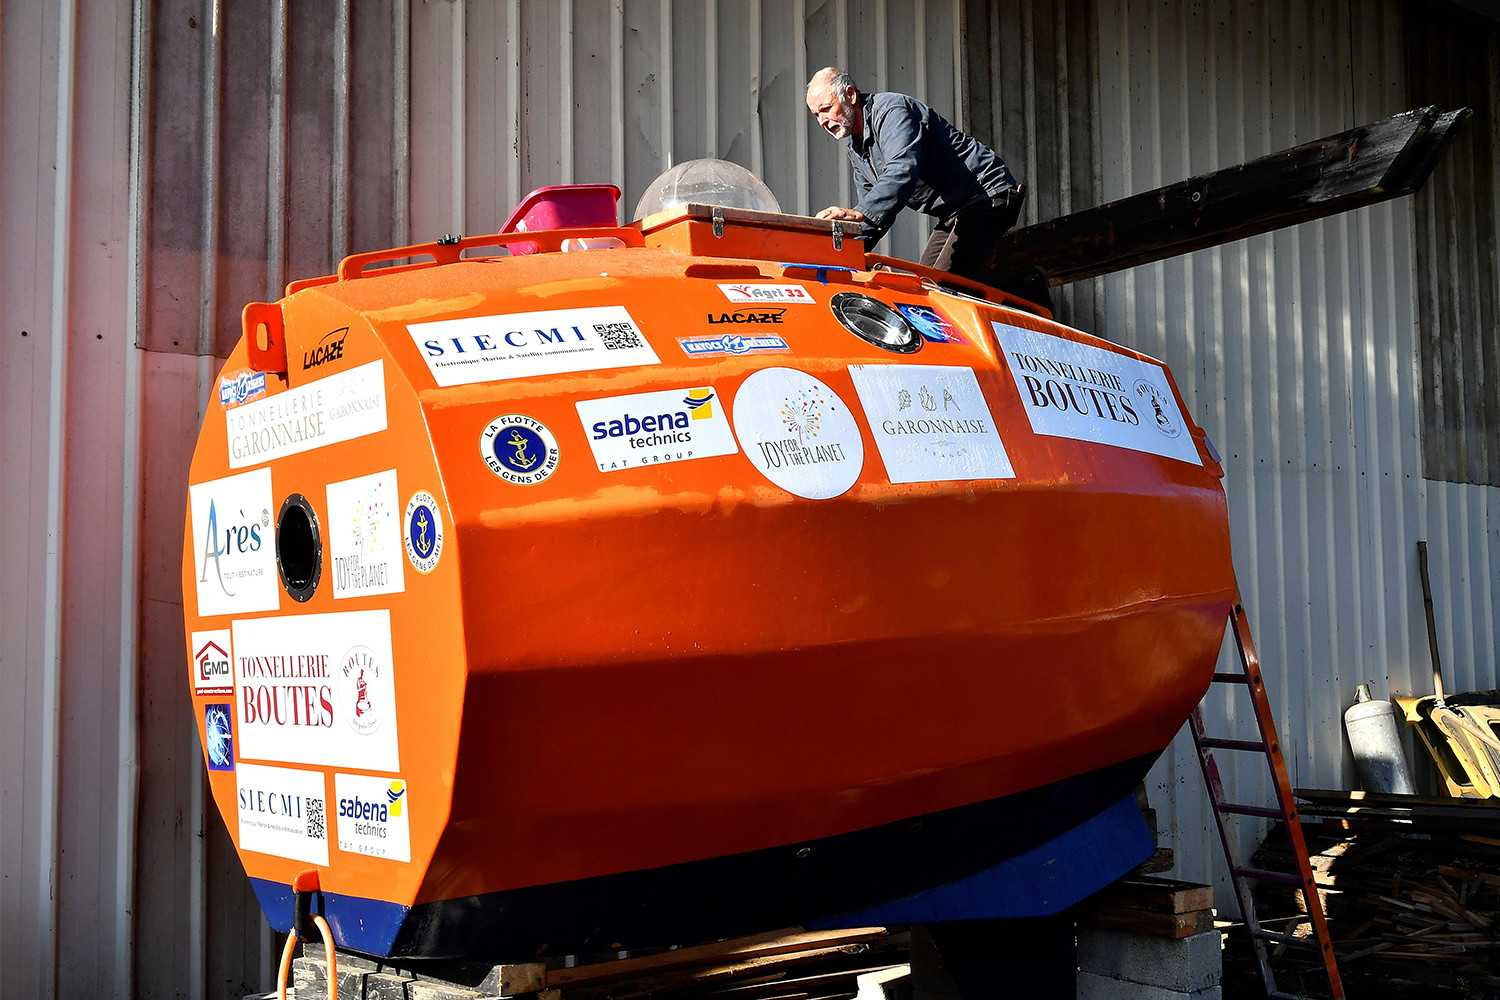 A 72-Year-Old Crossed the Atlantic in an Unpowered Wooden Barrel